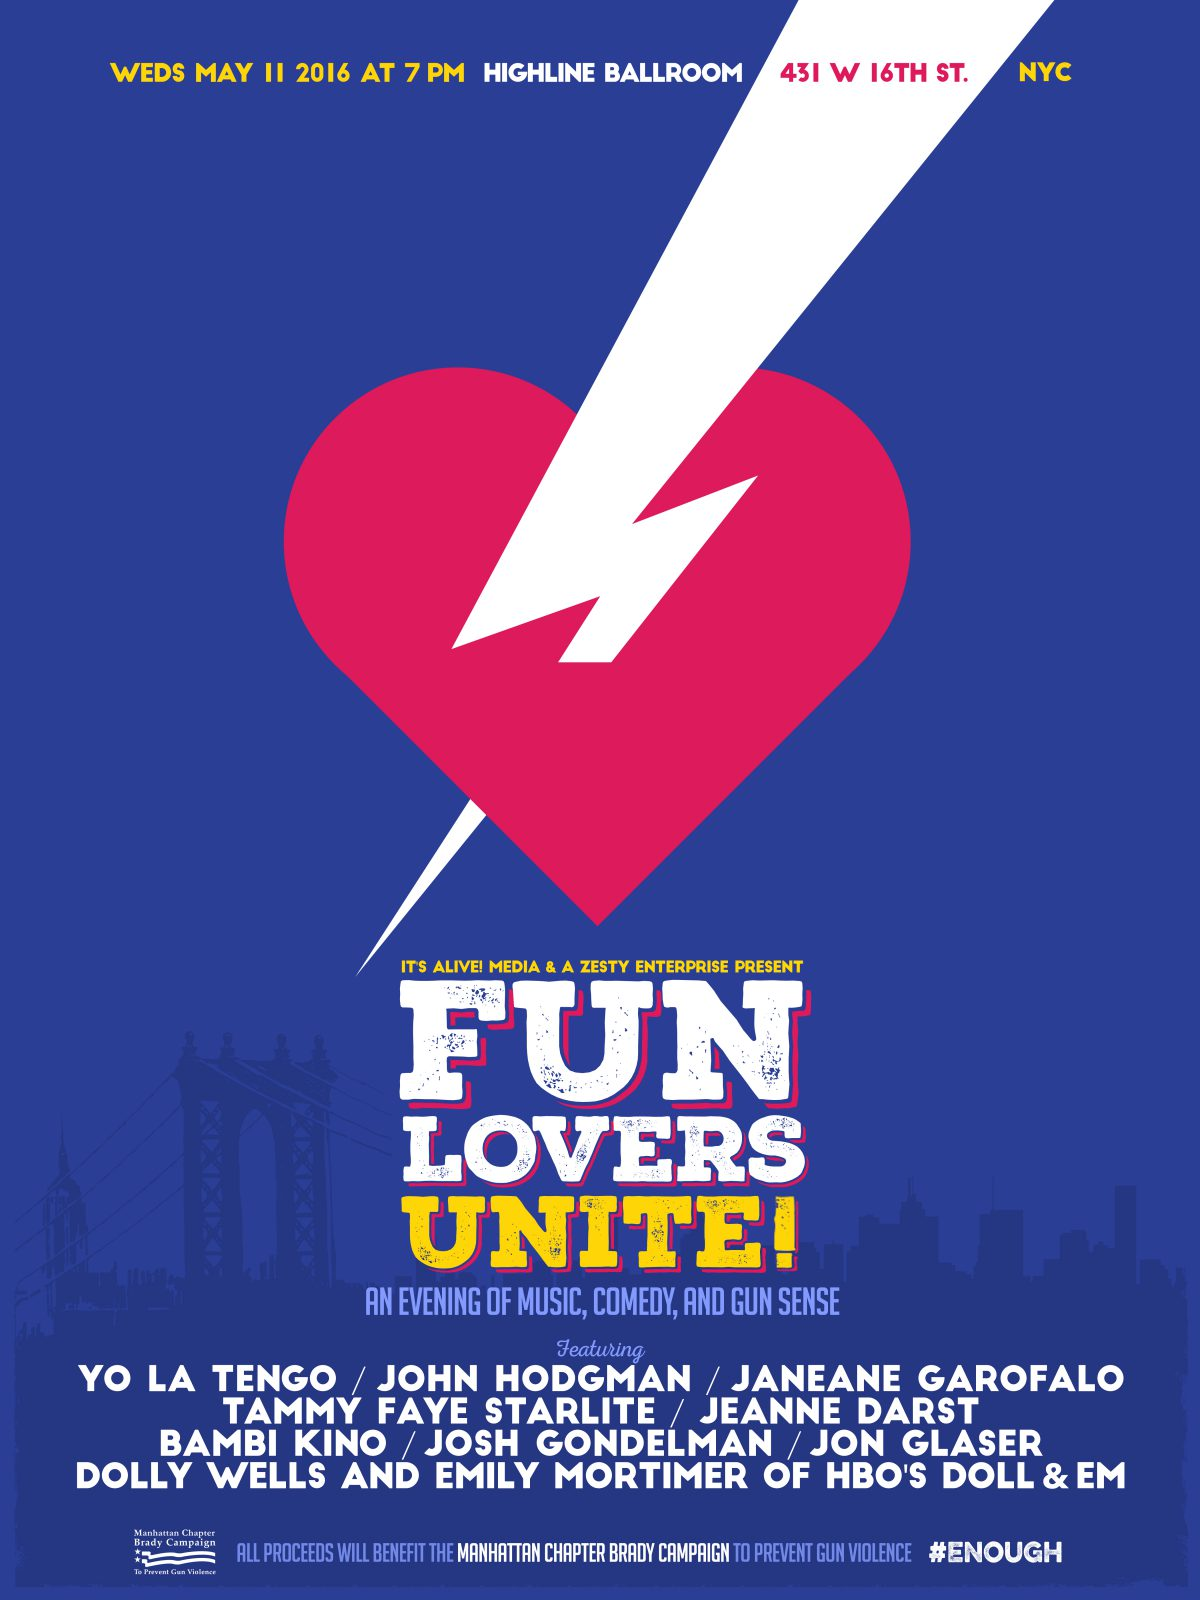 NYC MEDIA ALERT: Fun Lovers Unite with Yo La Tengo, Doll & Em, Janeane Garofalo & John Hodgman on Wed.'s May 11 at NYC's Highline Ballroom Announce MC's for Event!